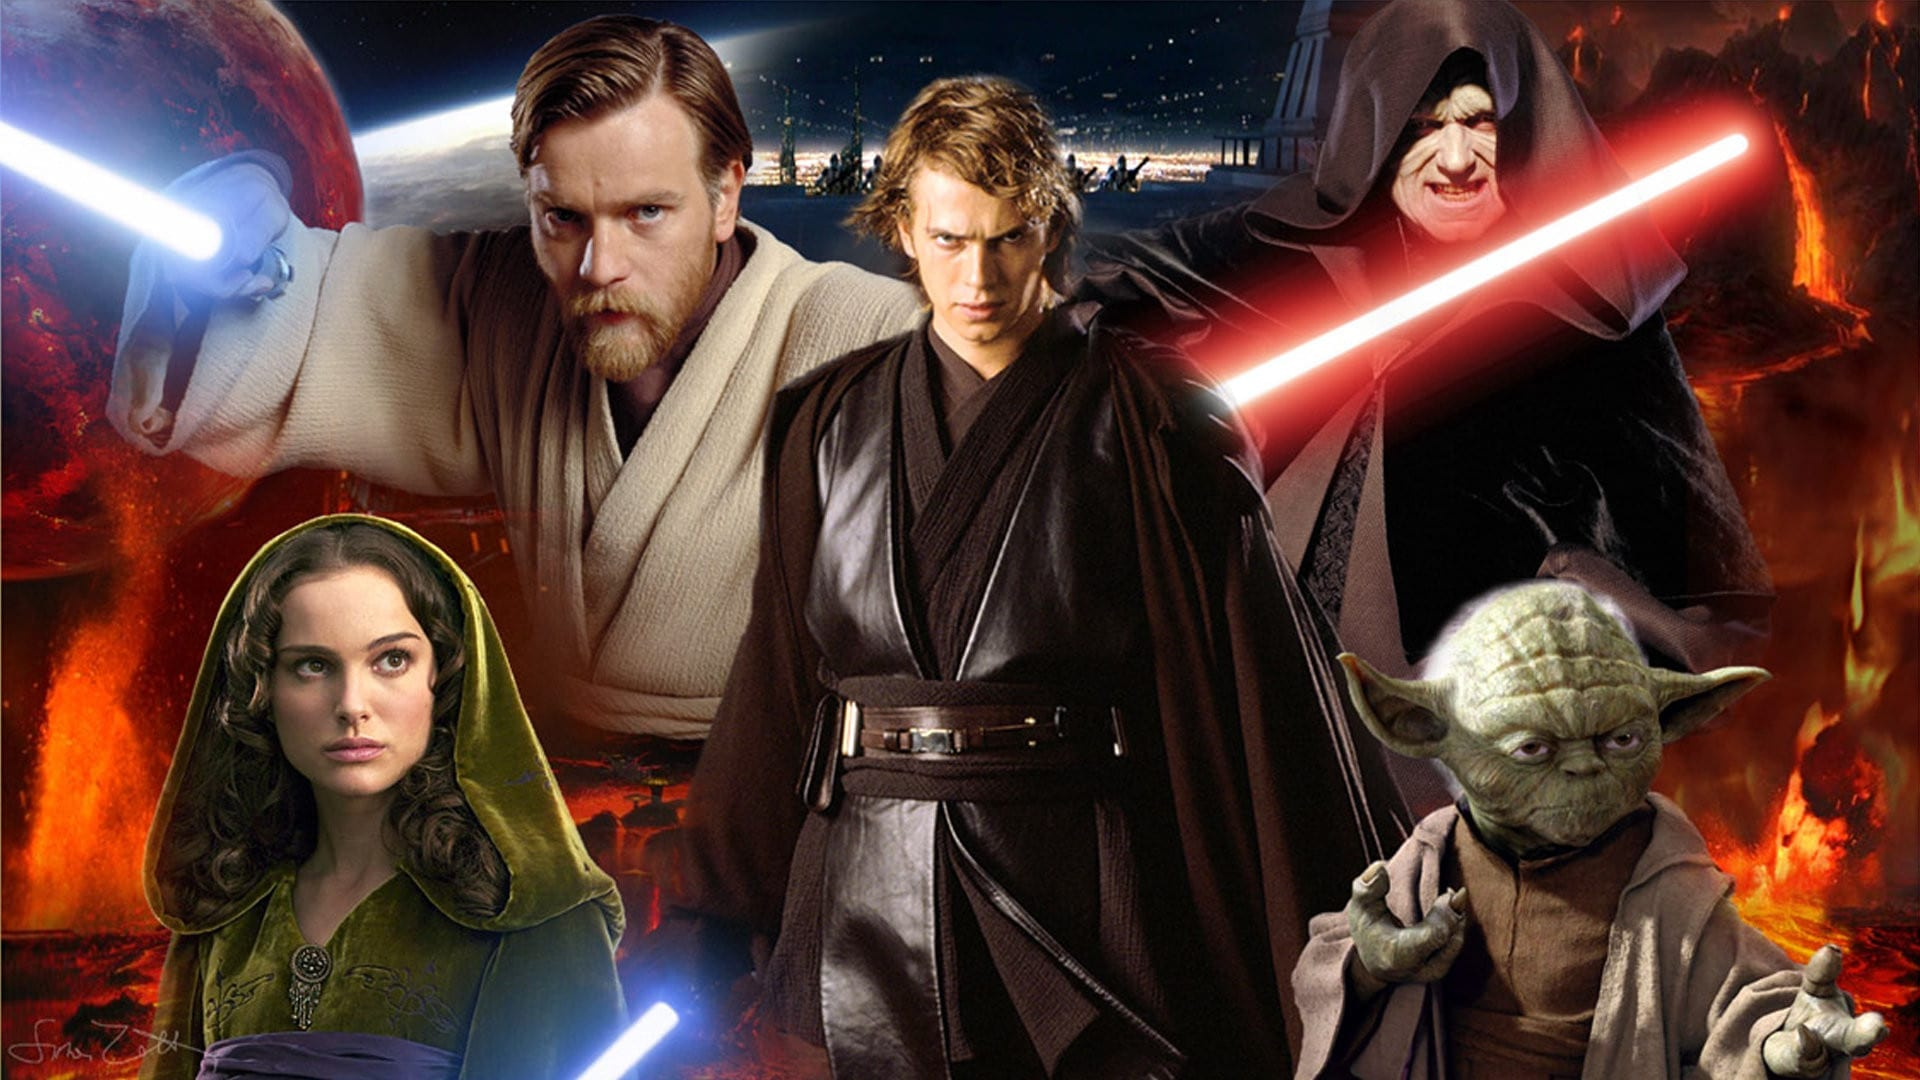 Film Review: Star Wars: Episode III – Revenge of the Sith